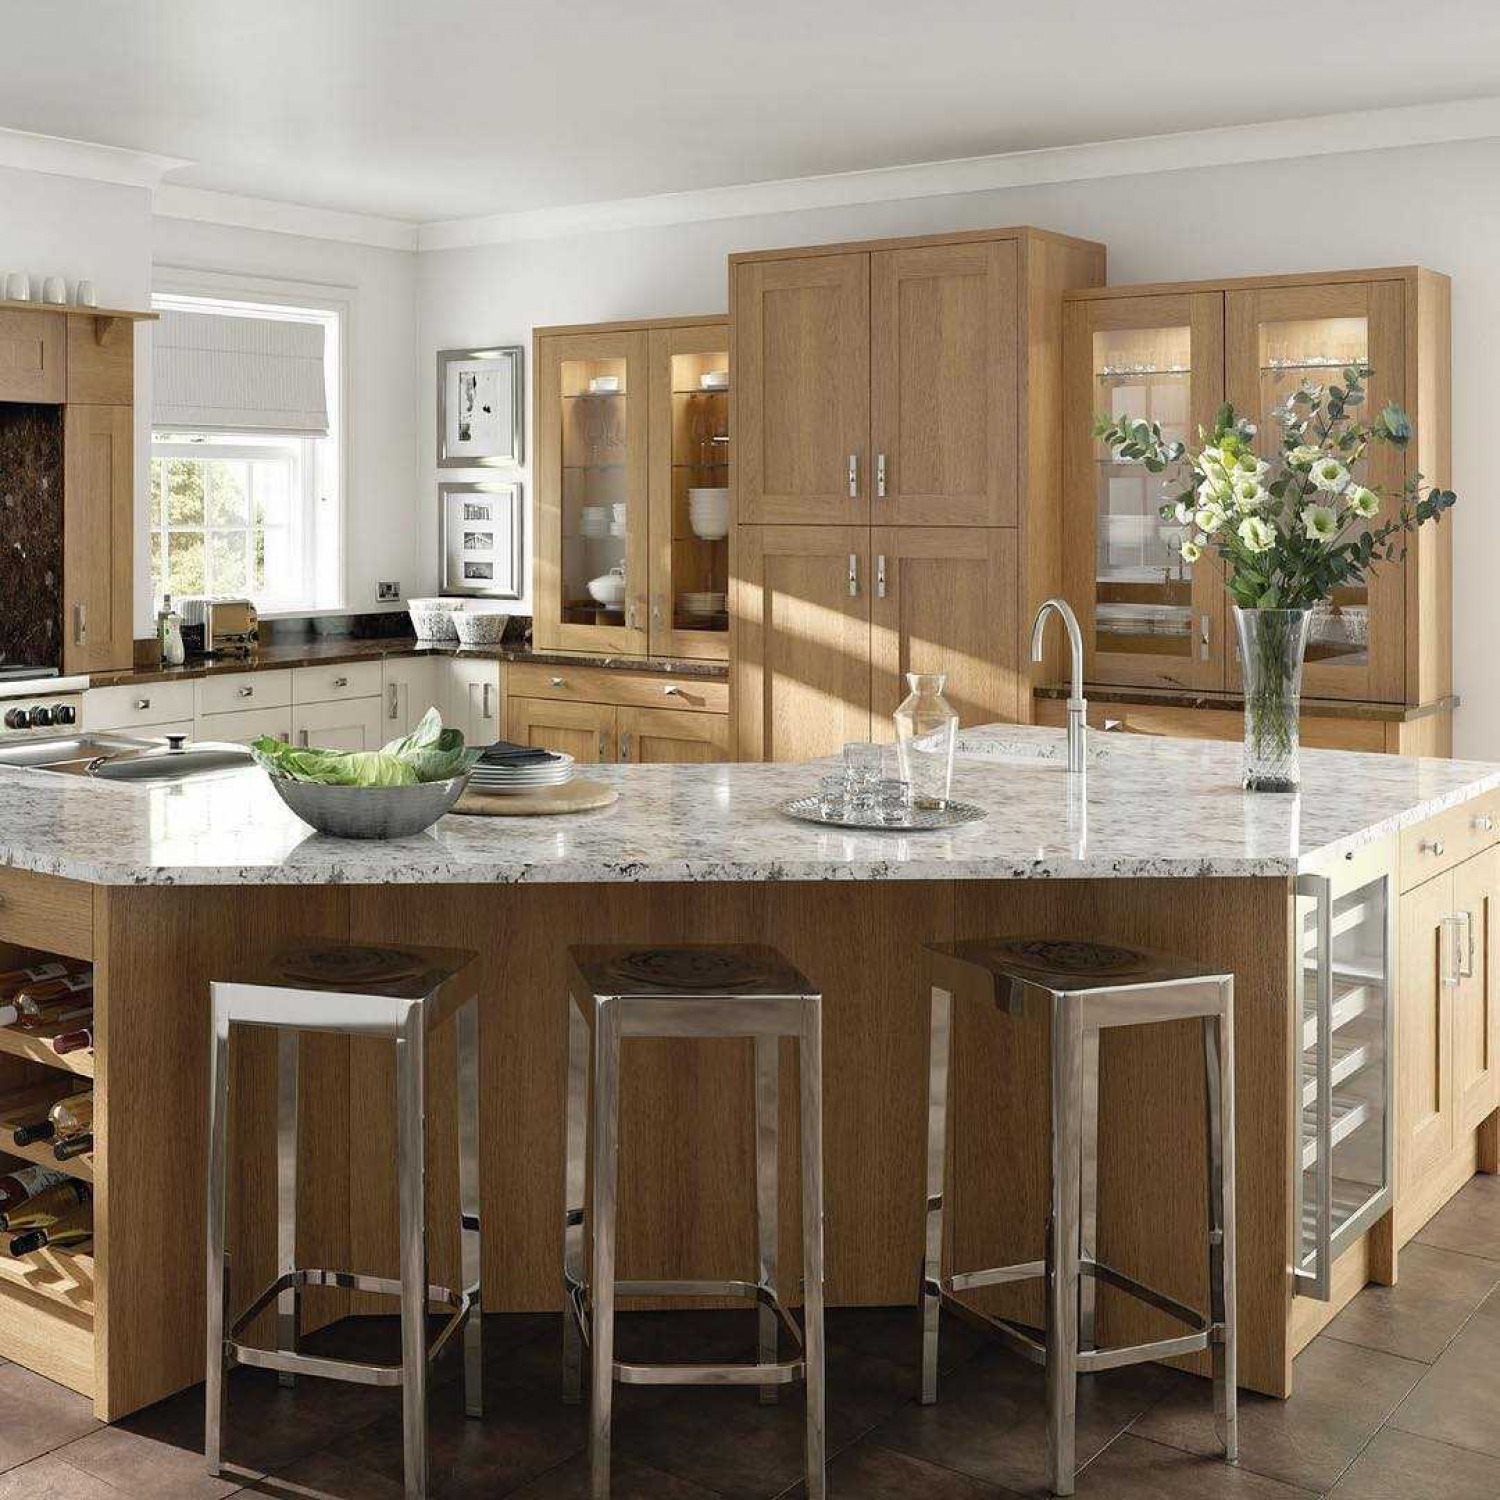 G Shaped Kitchen Angled Counters